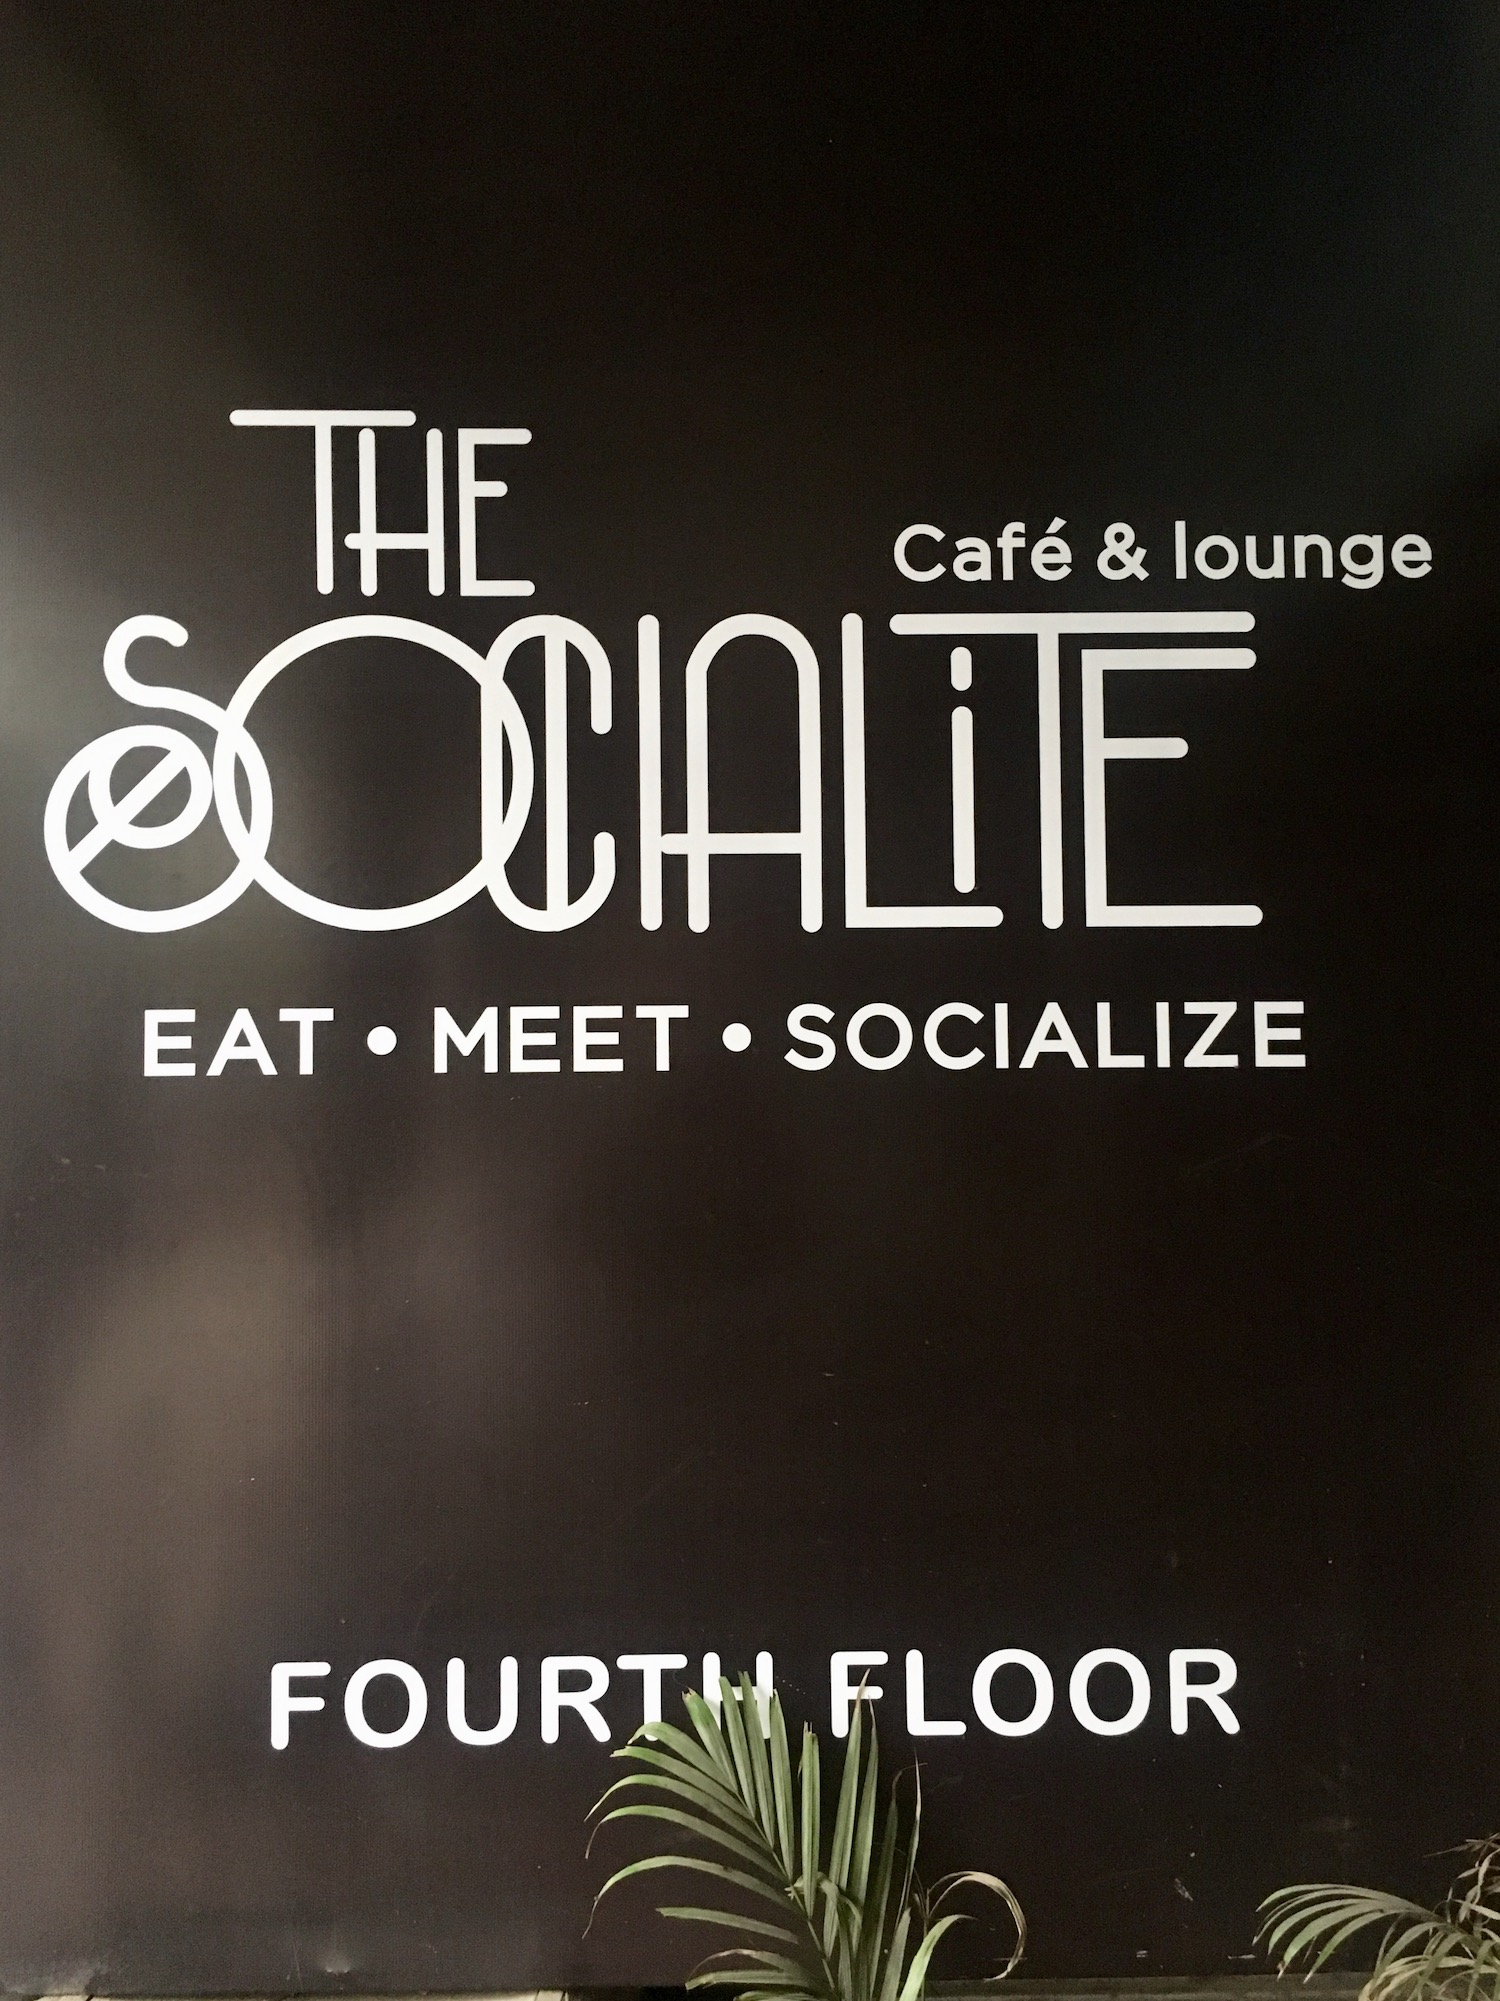 the-socialite-cafe-lounge-jaipur-review